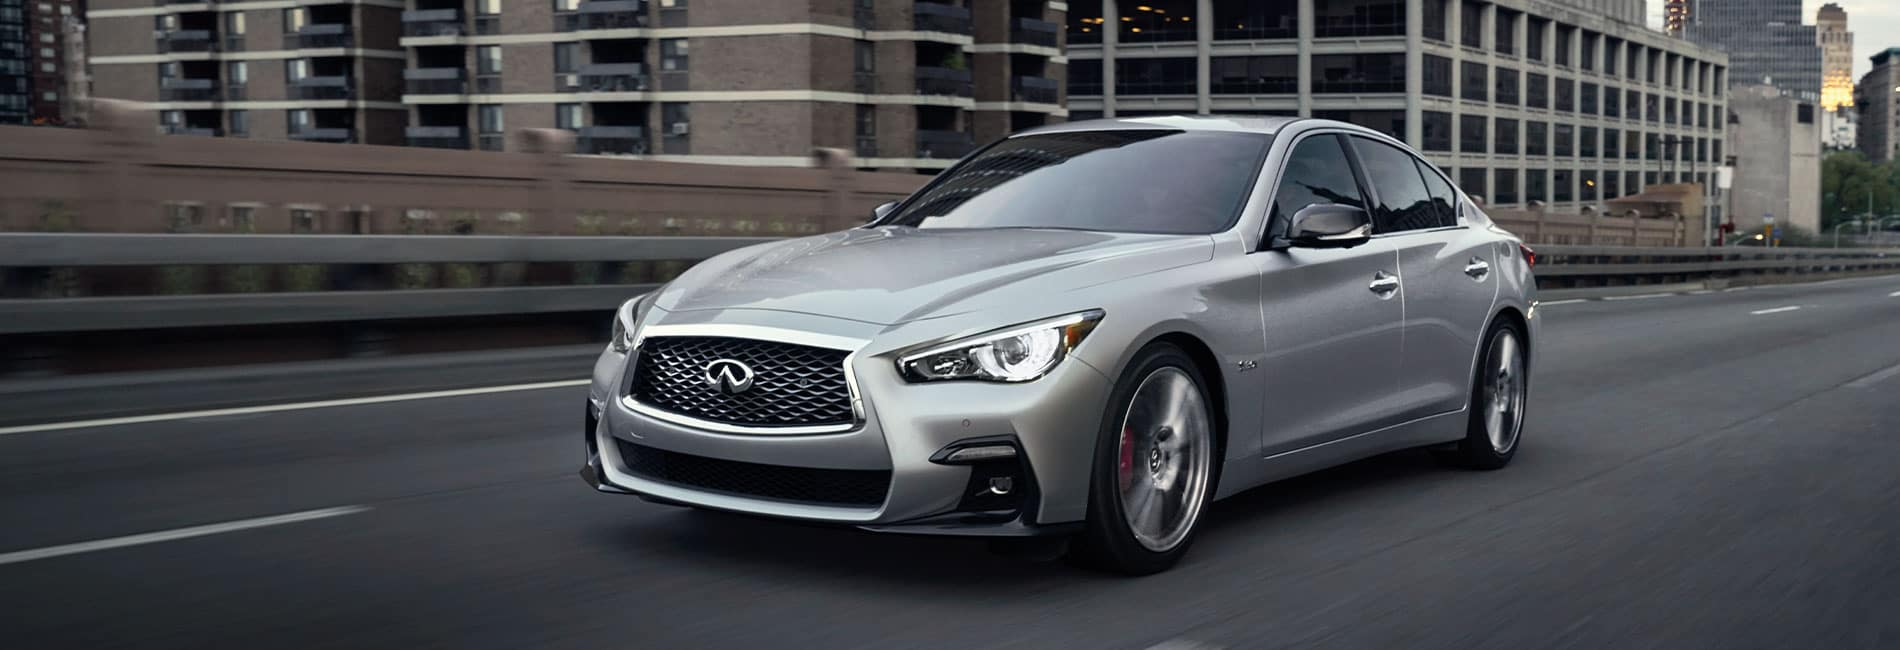 2020 INFINITI Q50  for Sale in Chicago, IL